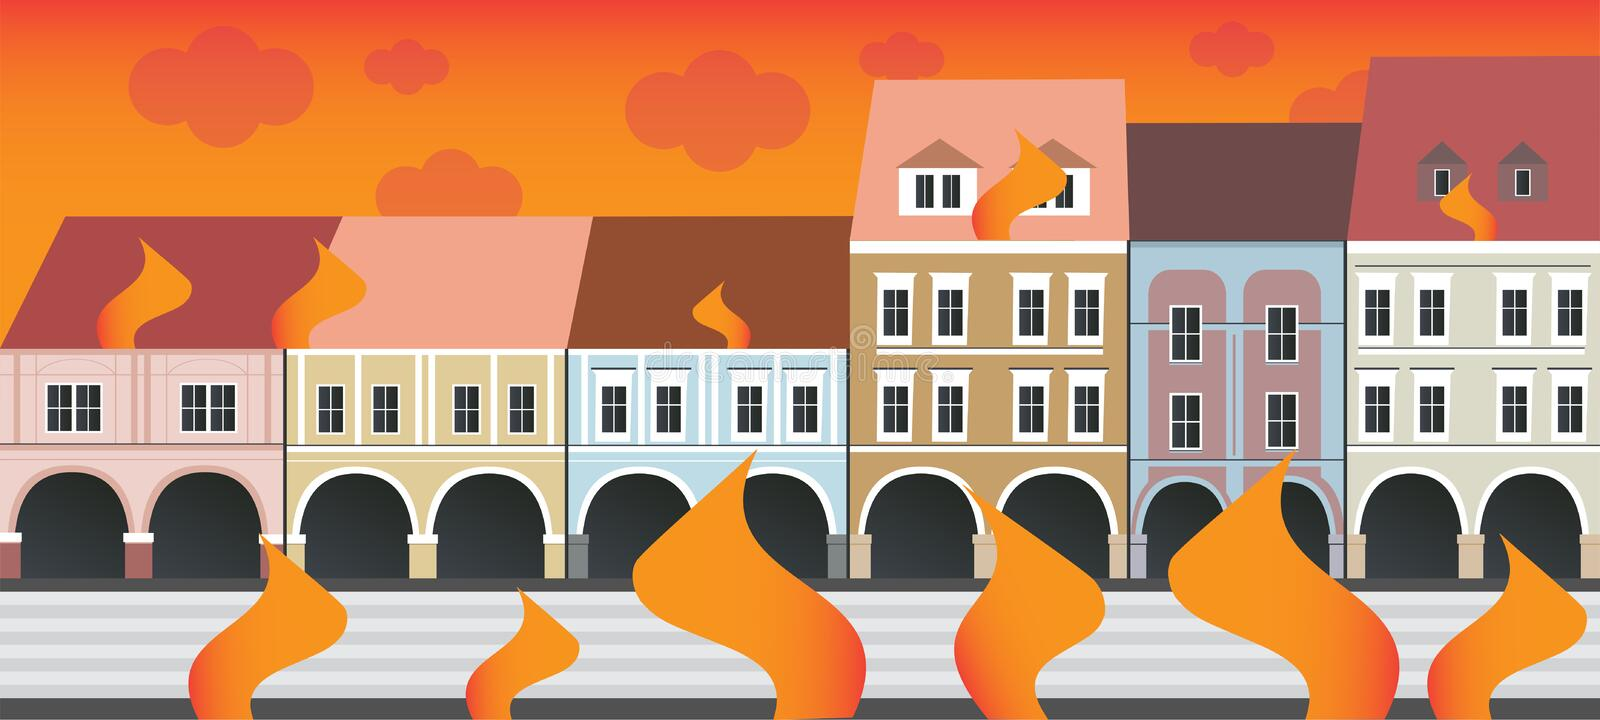 The burning city - fire in city streets royalty free illustration